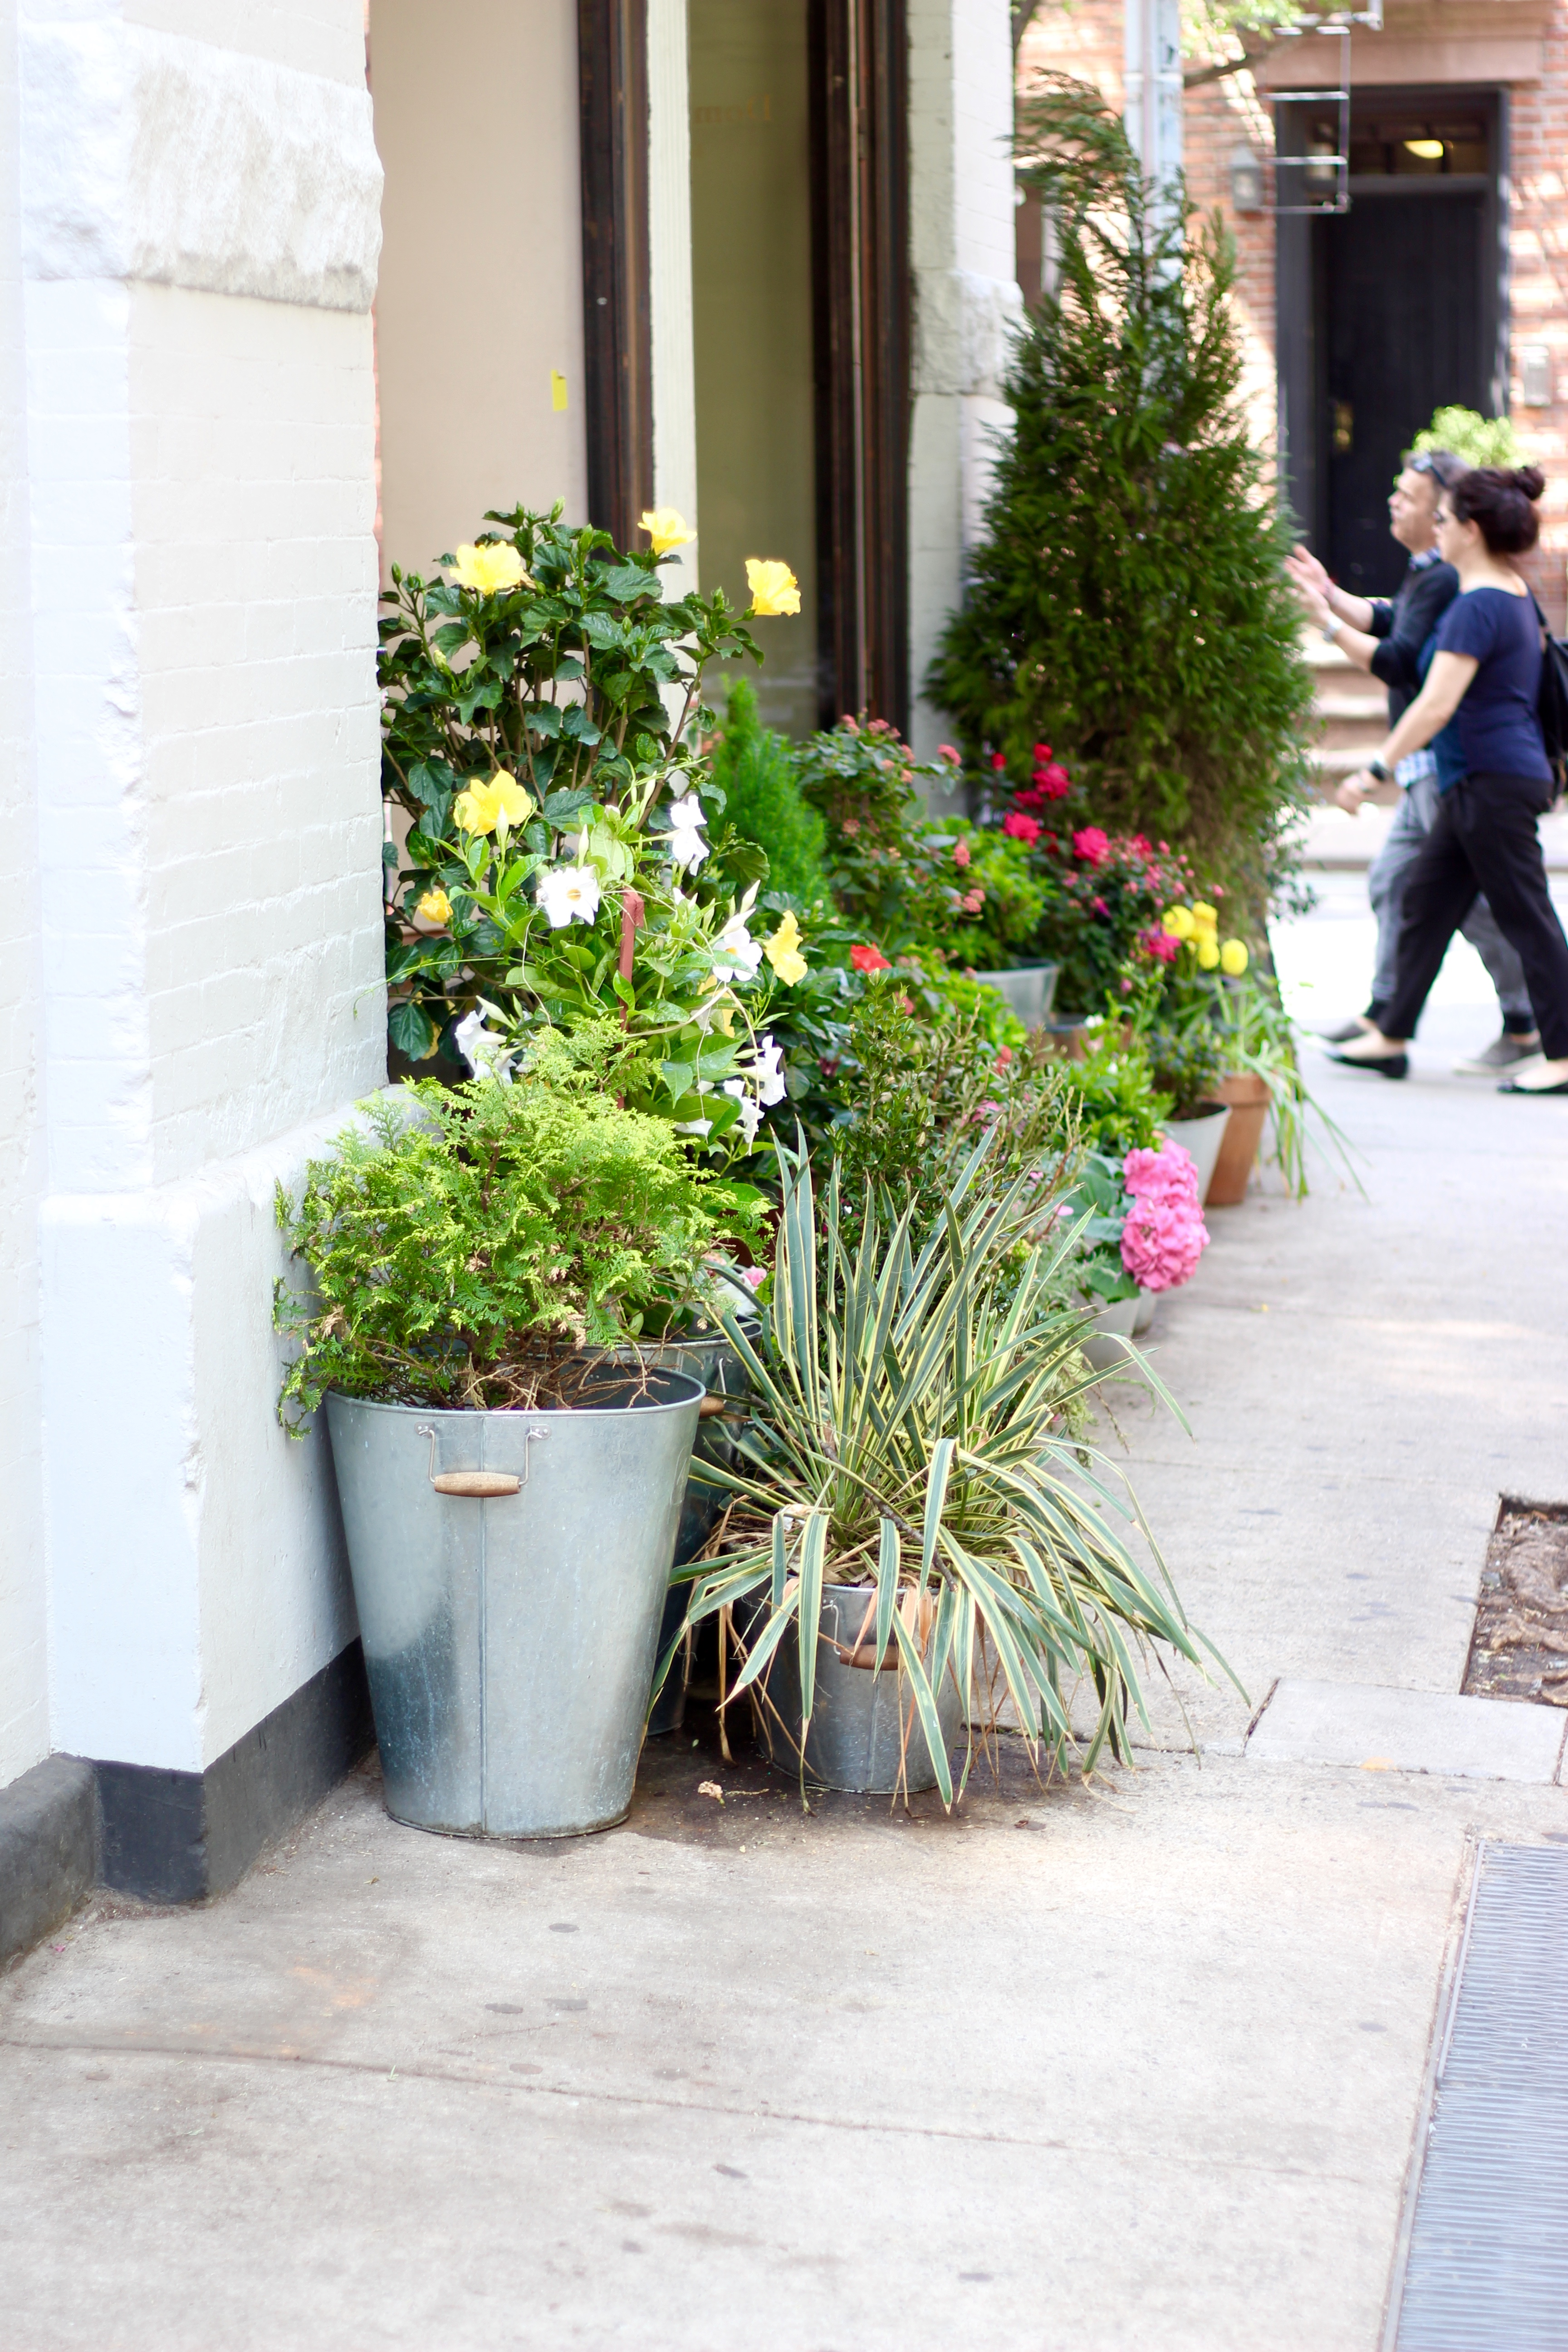 new york city flowers in soho | Audrey Madison Stowe Blog